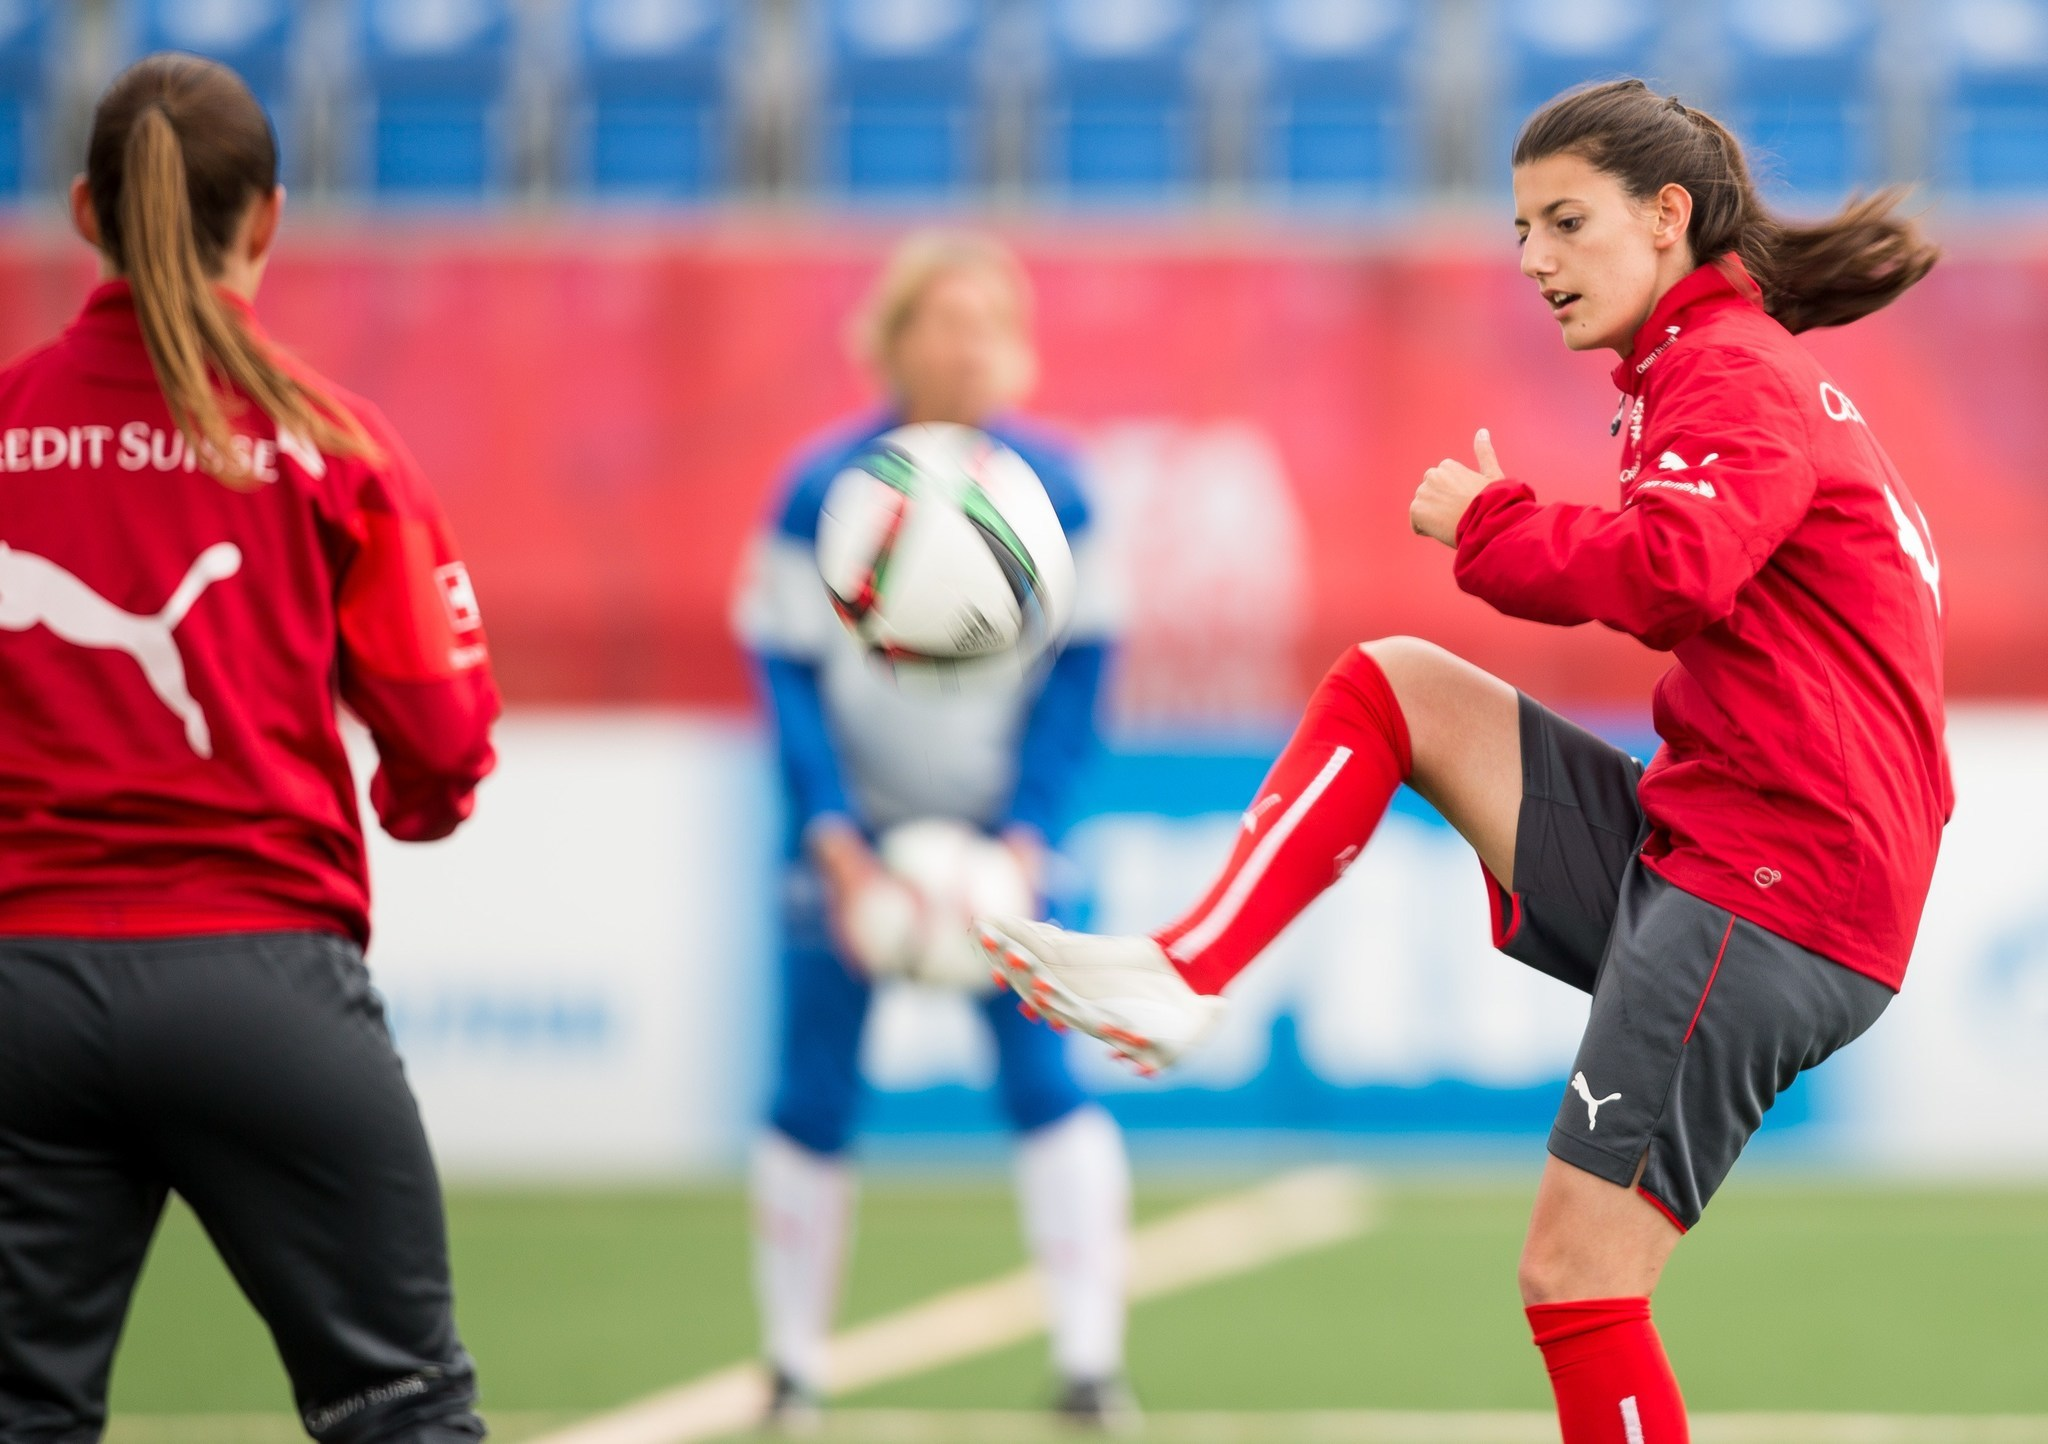 Swiss soccer star Florijana Ismaili confirmed dead after swimming accident in Italy